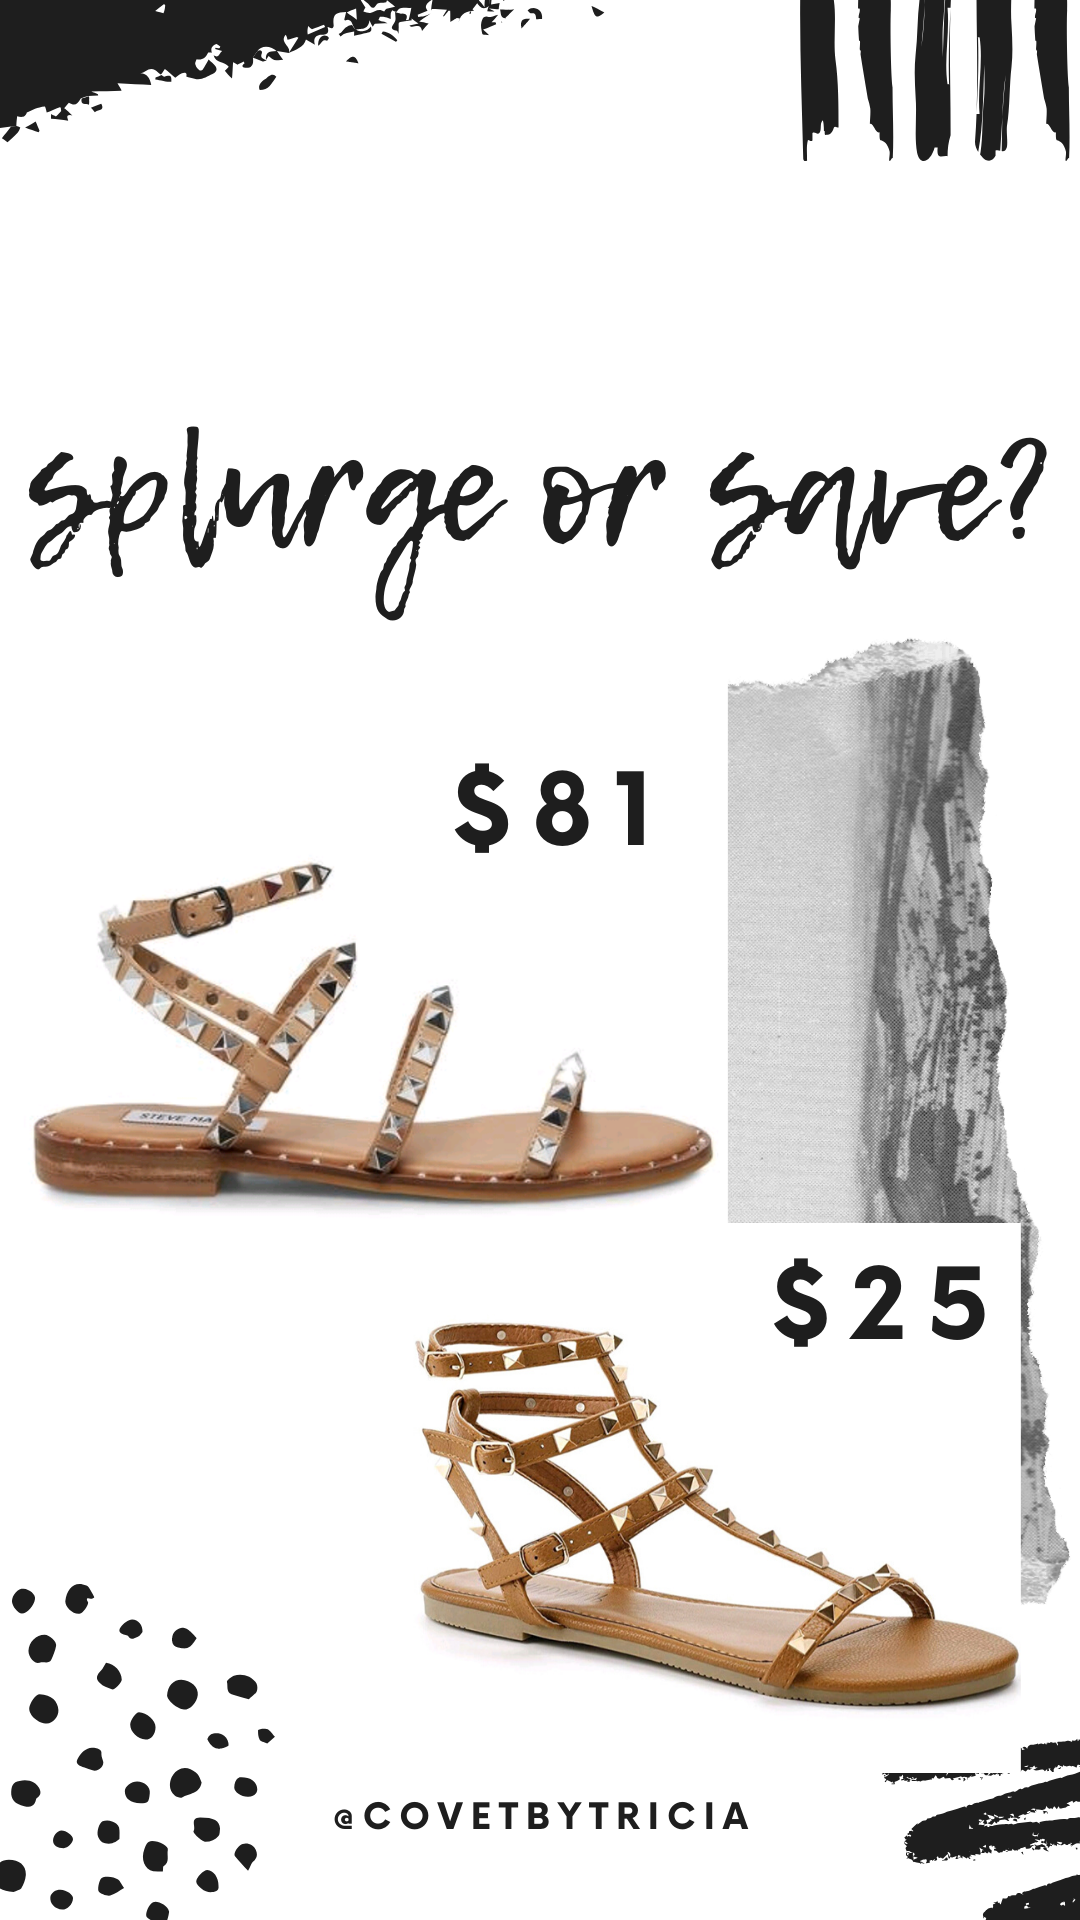 Best Studded Sandals for 2020 - We scoured the Internet for the best studded sandals in 2020! From the popular Steve Madden Travel Sandal to $10 dupe sandals, we have the perfect studded sandals for your style and budget. We're sharing the best clear studded sandals and the best nude studded sandals in this in-depth post! #sandals #summer2020 #shoes